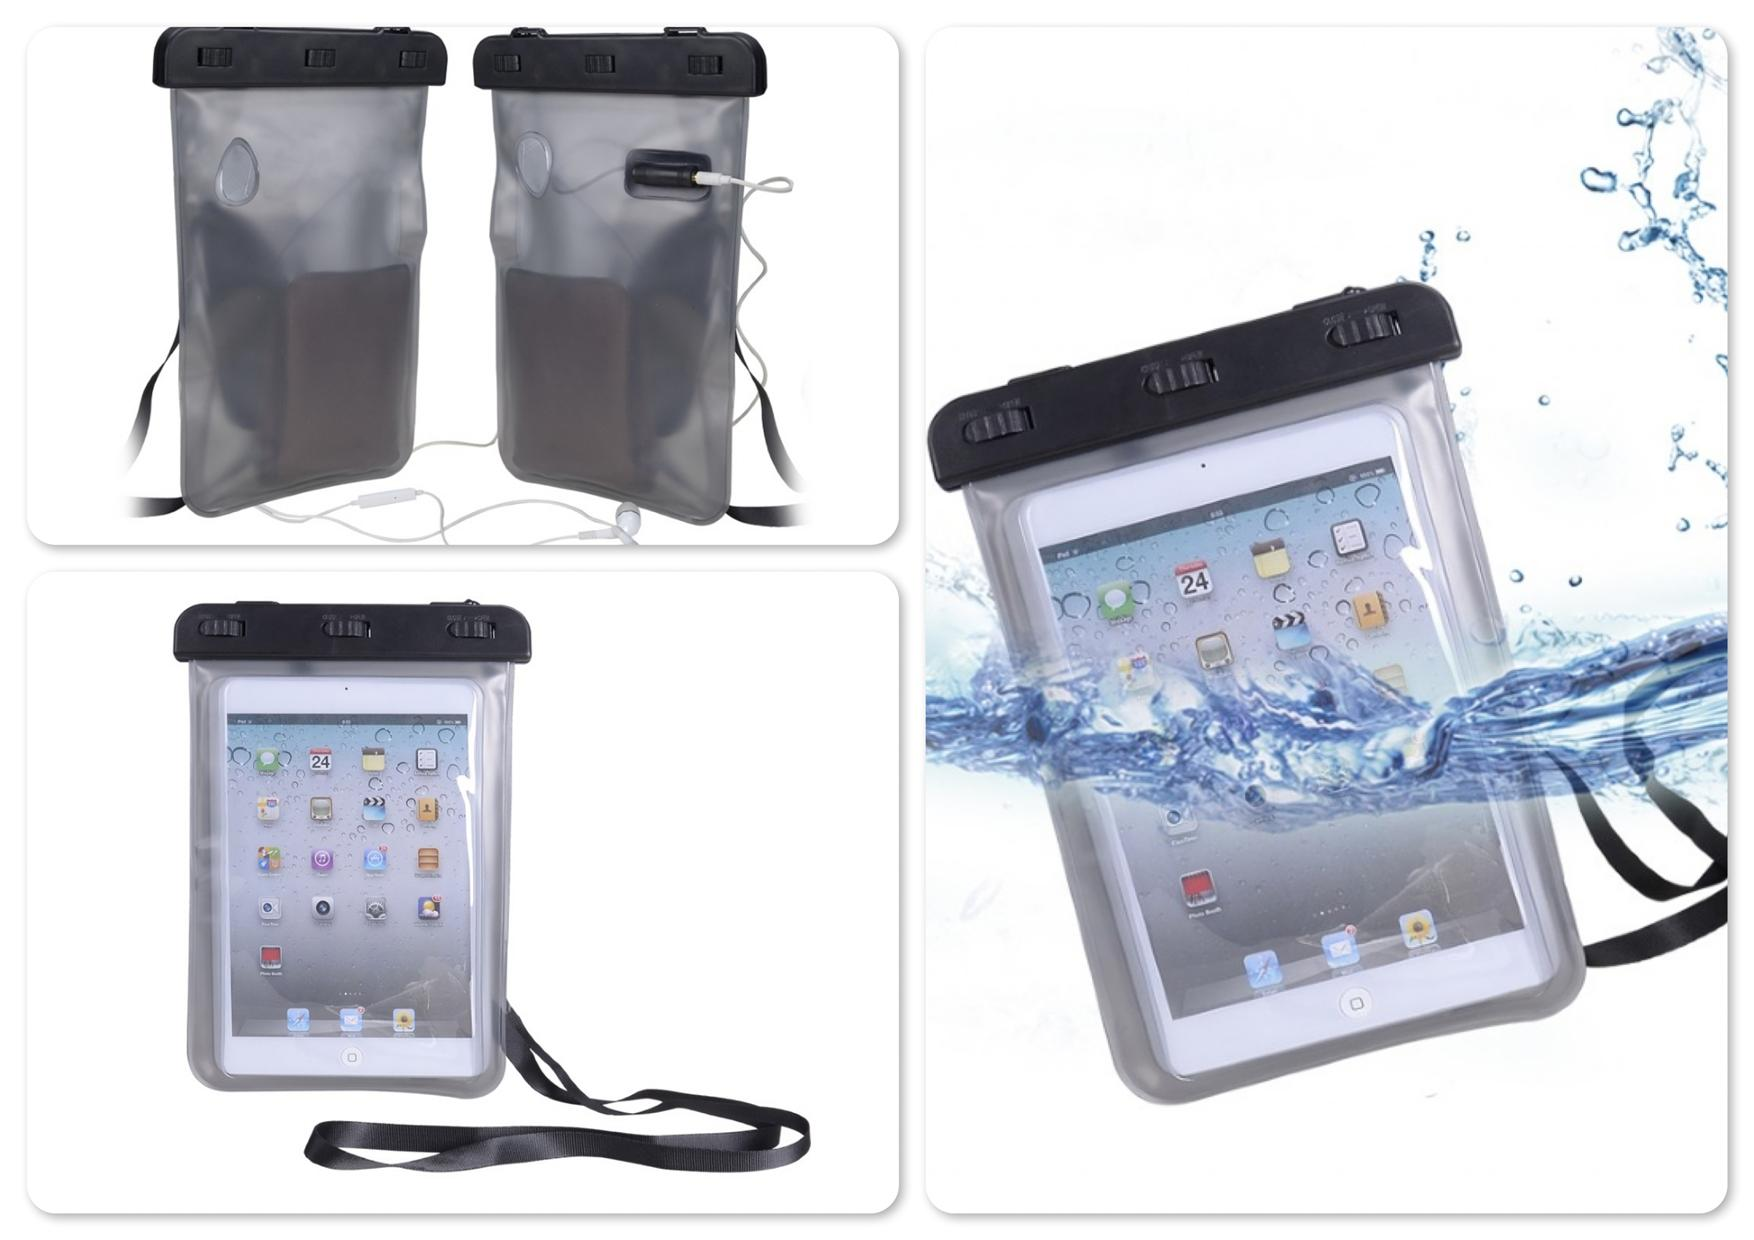 Bdotcom = Avantree KSWP-005 Waterproof Bag for 7' 8' Tablet - Dolphin